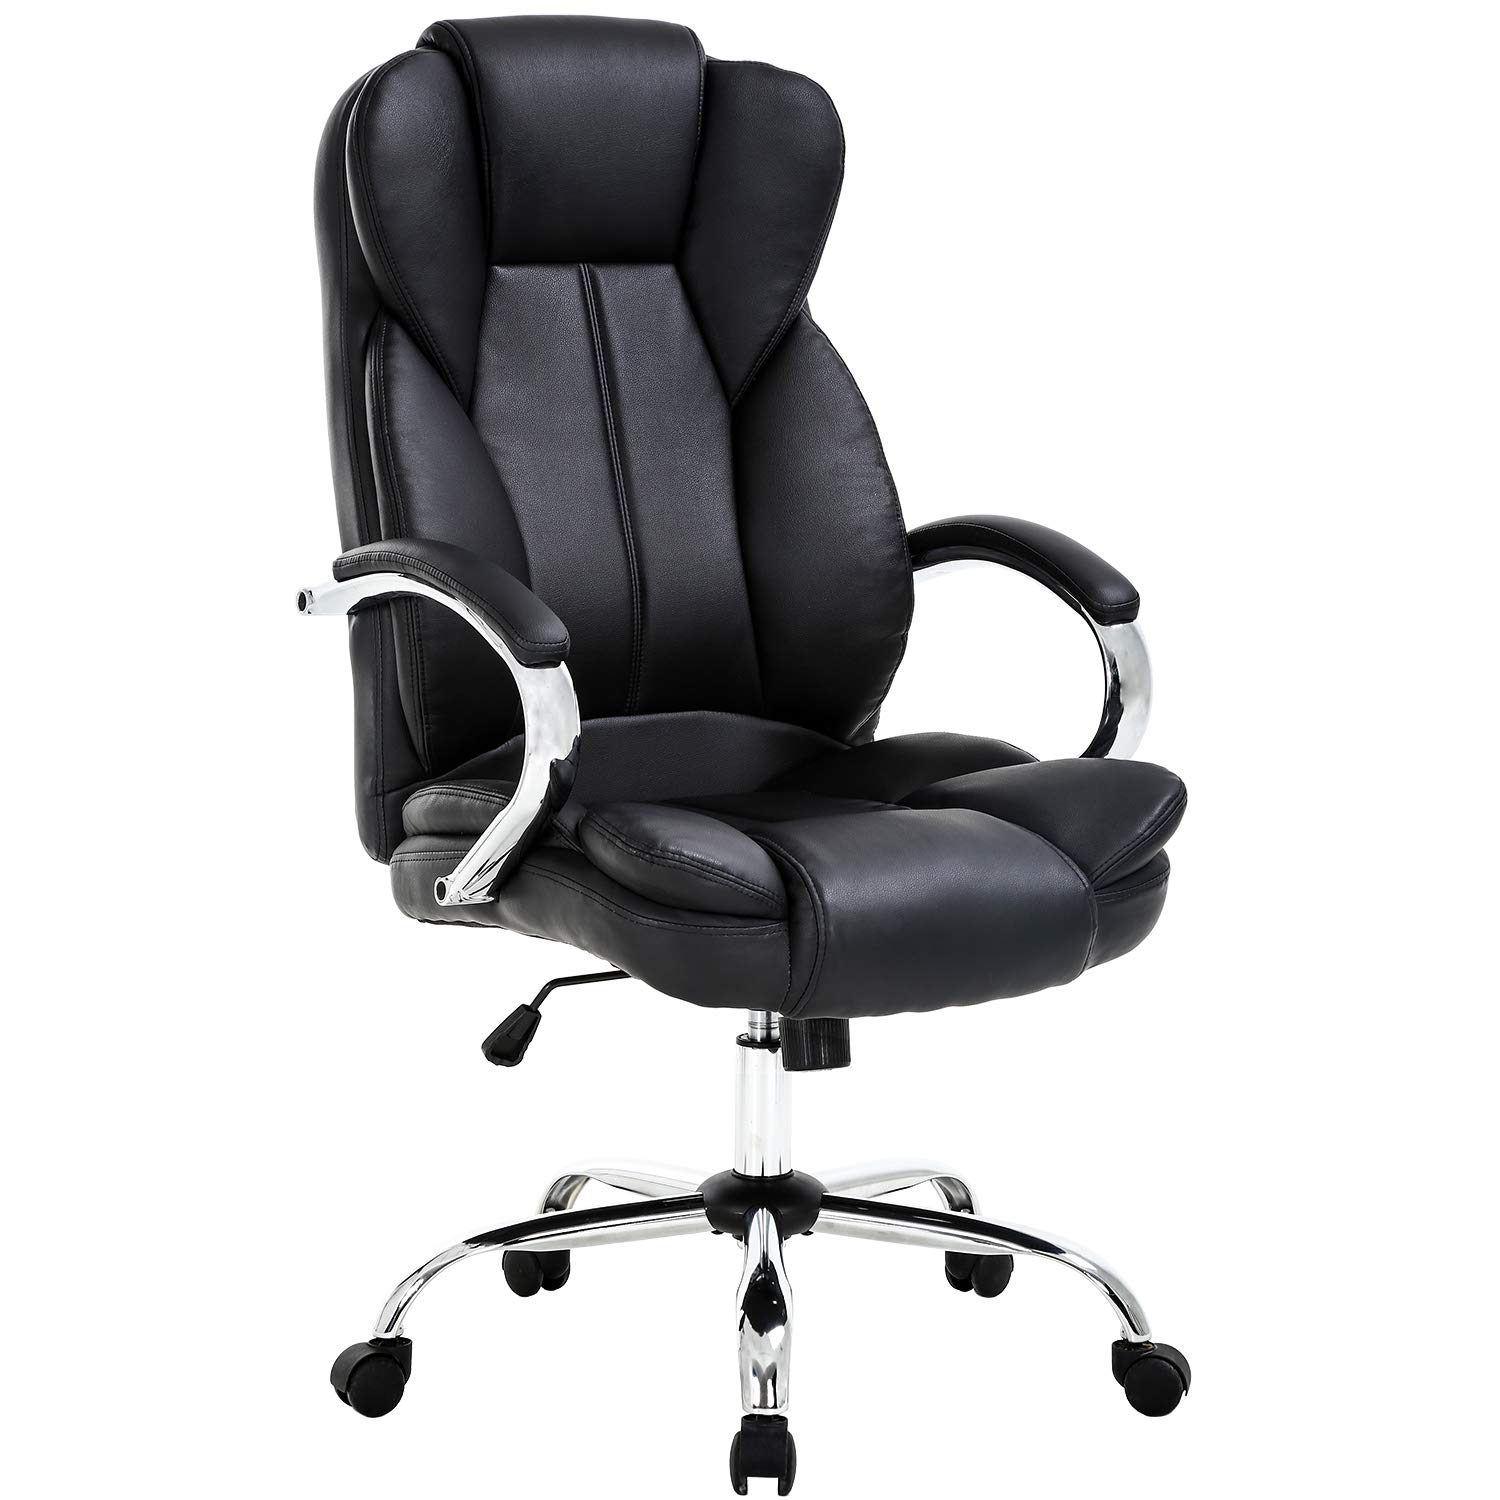 Ergonomic Home Office Chair, High Back PU Leather Computer Desk Chairs, Task Rolling Swivel Executive Chair with Lumbar Support Armrest for Women, Men(Black) by BestOffice